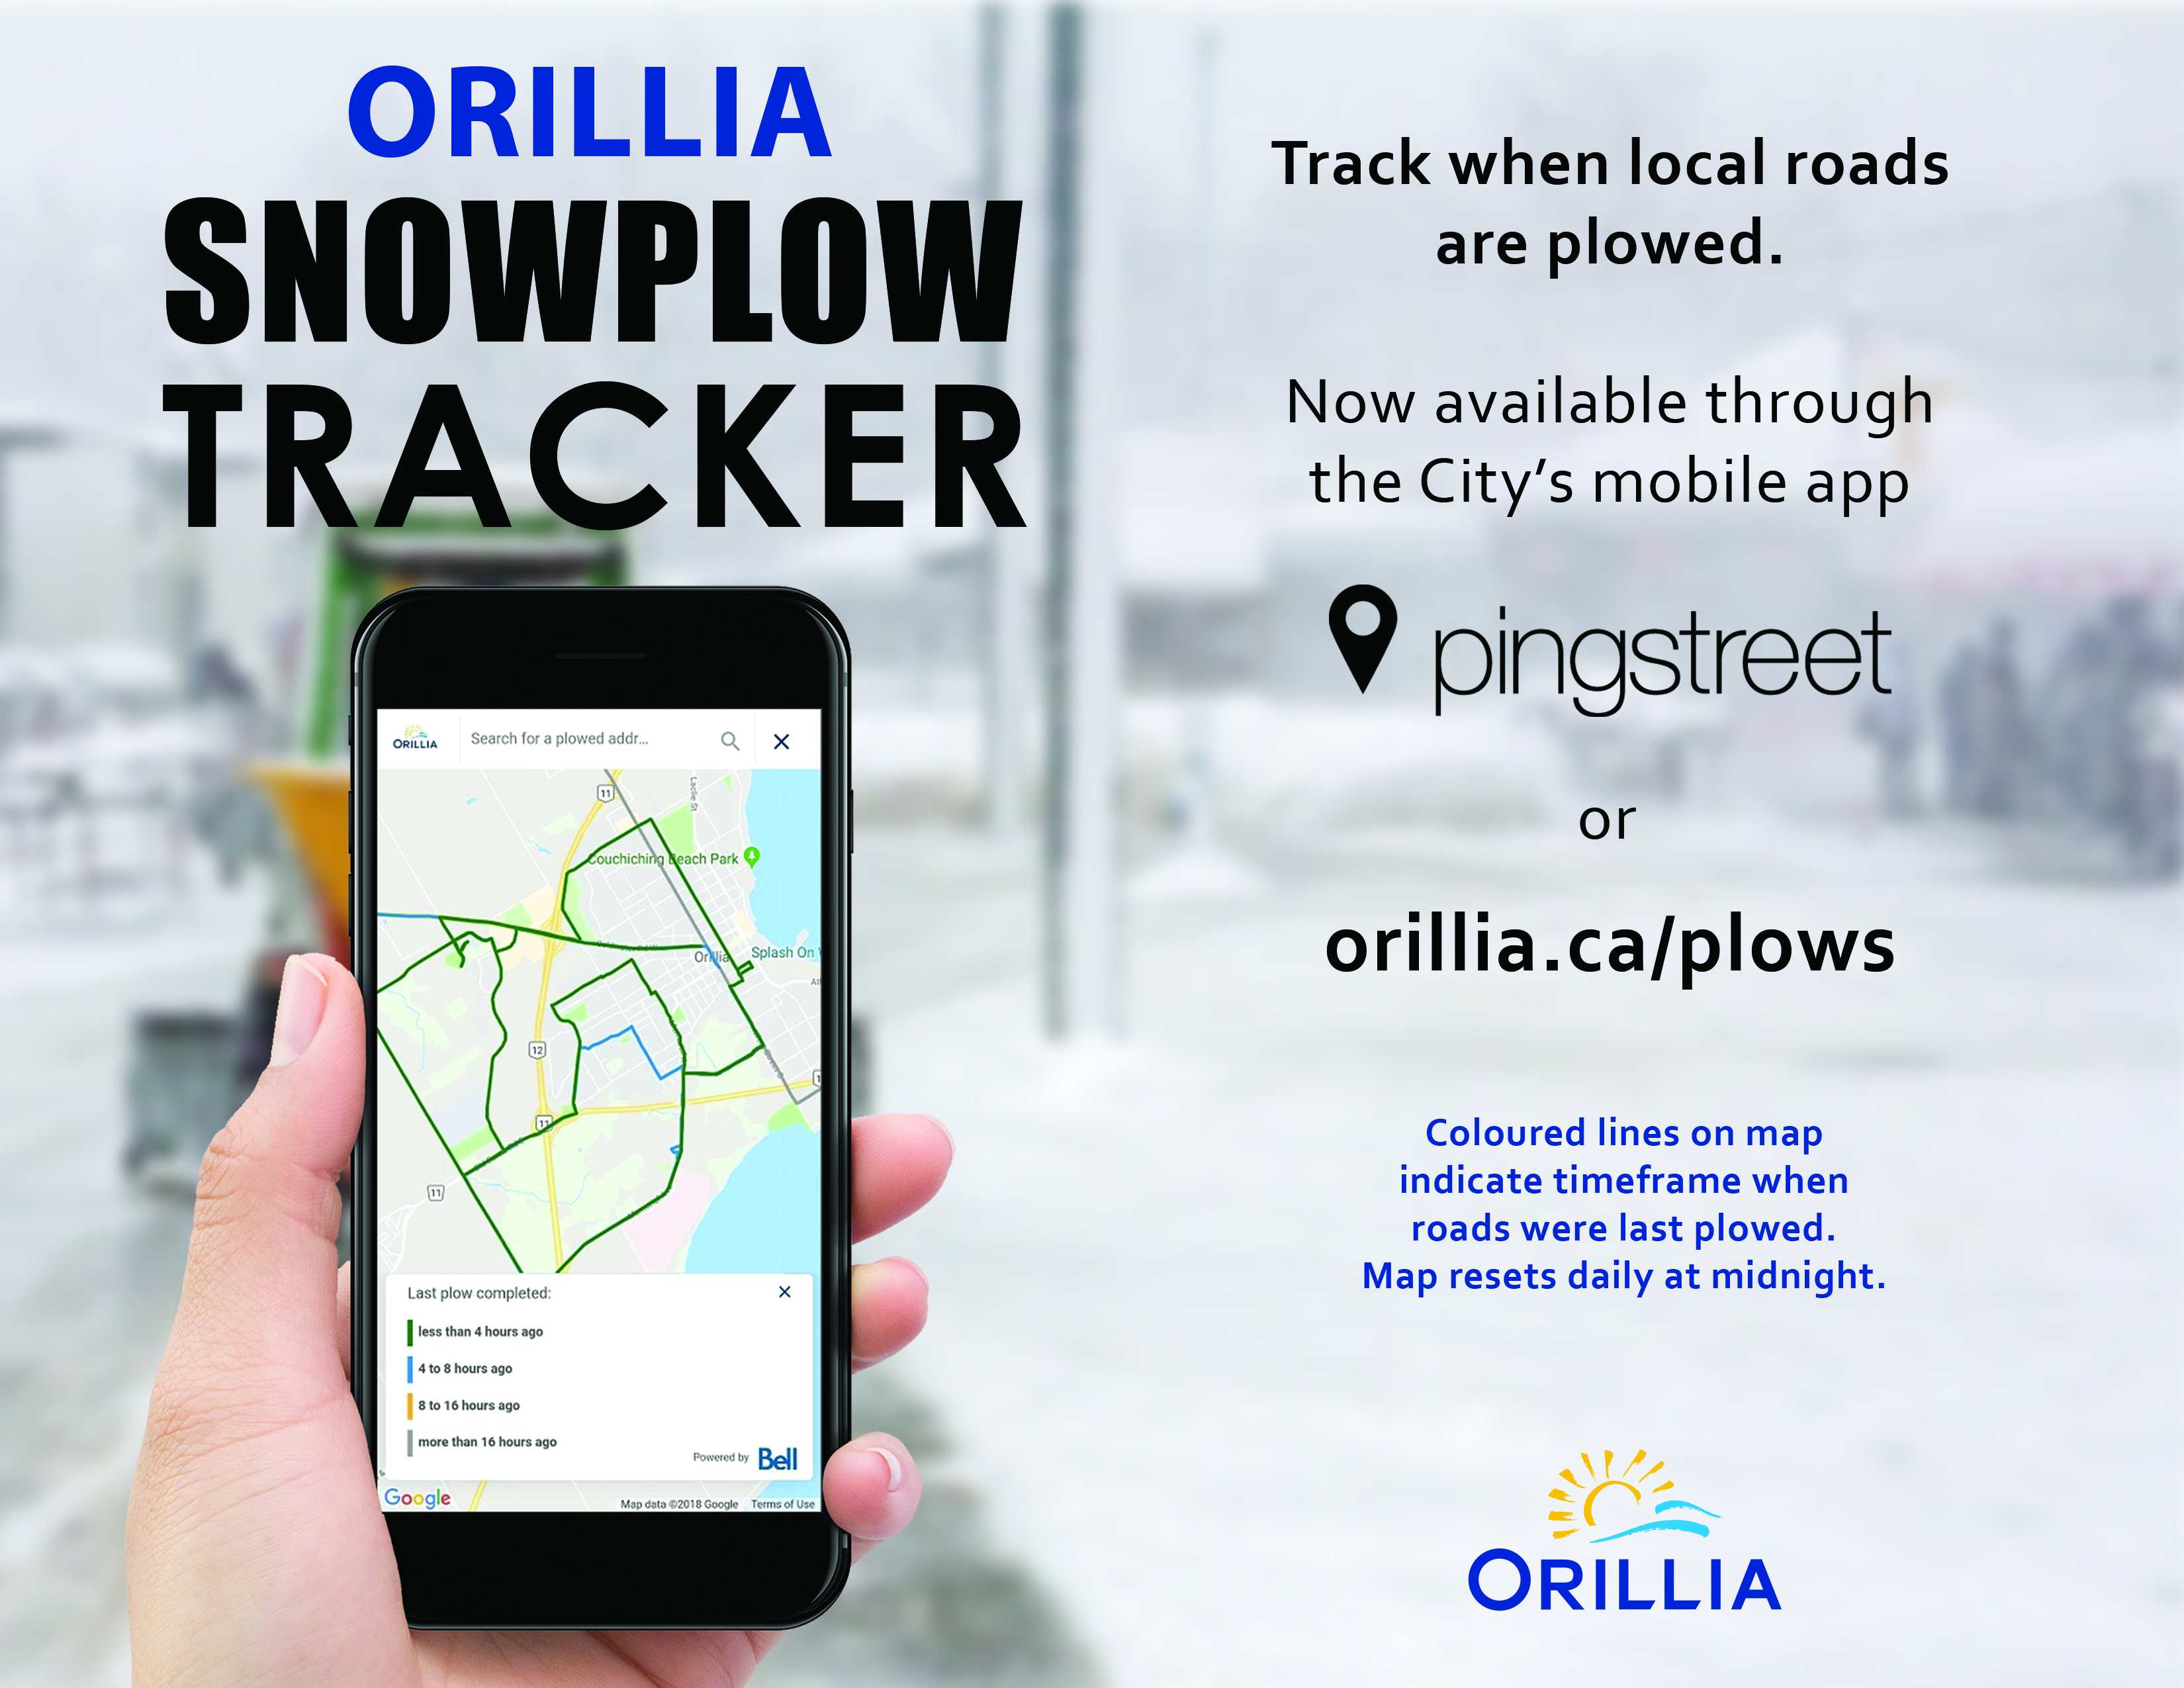 Snowplow Tracker Info